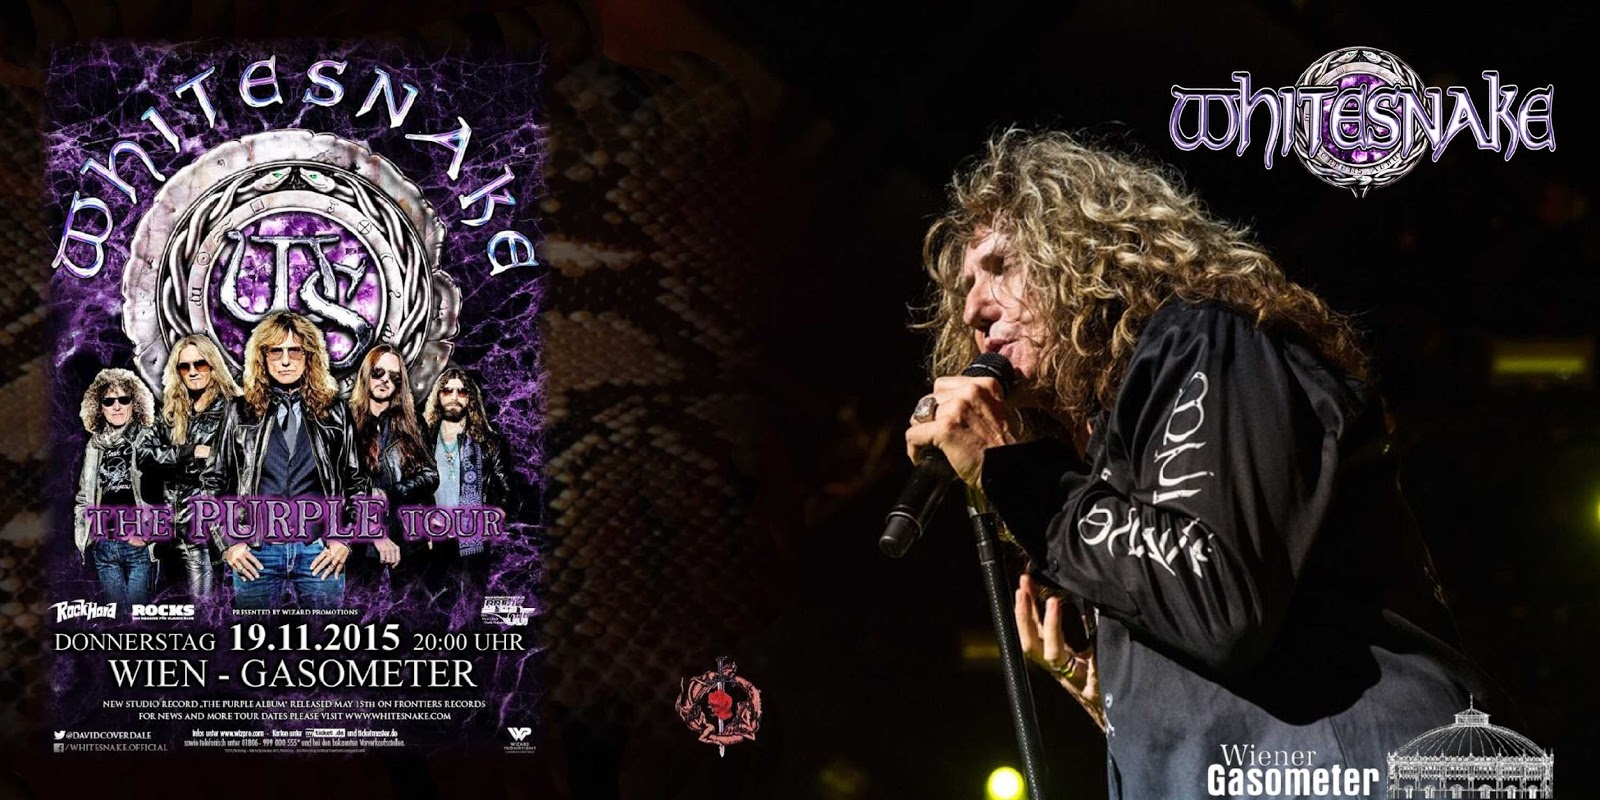 Whitesnake Tour 2017 Italia | lifehacked1st.com